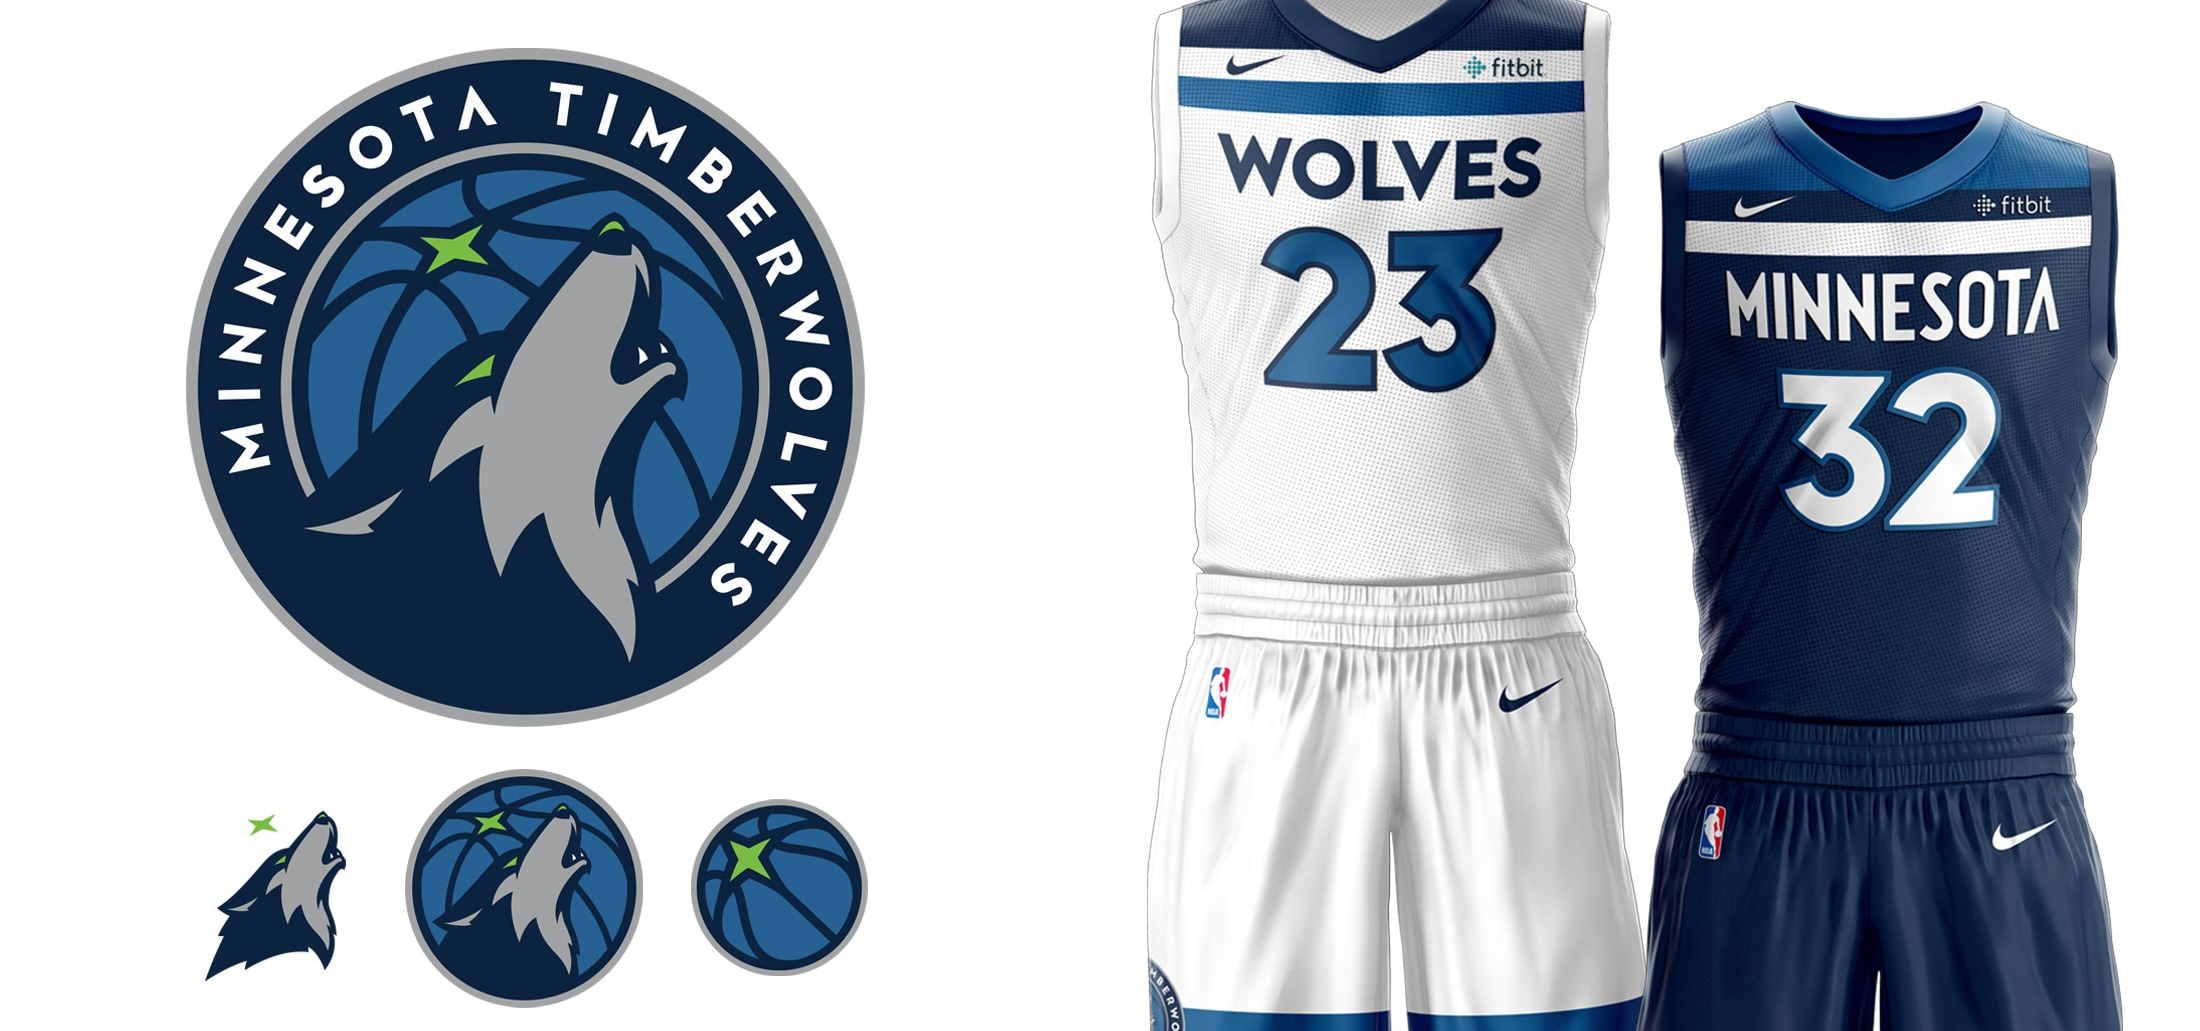 an introduction to the minnesota timberwolves basketball team The minnesota timberwolves (also commonly known as the wolves) is an american professional basketball team based in minneapolis, minnesotathe timberwolves compete in the national b asketball association (nba) as a member club of the league's western conference northwest division.